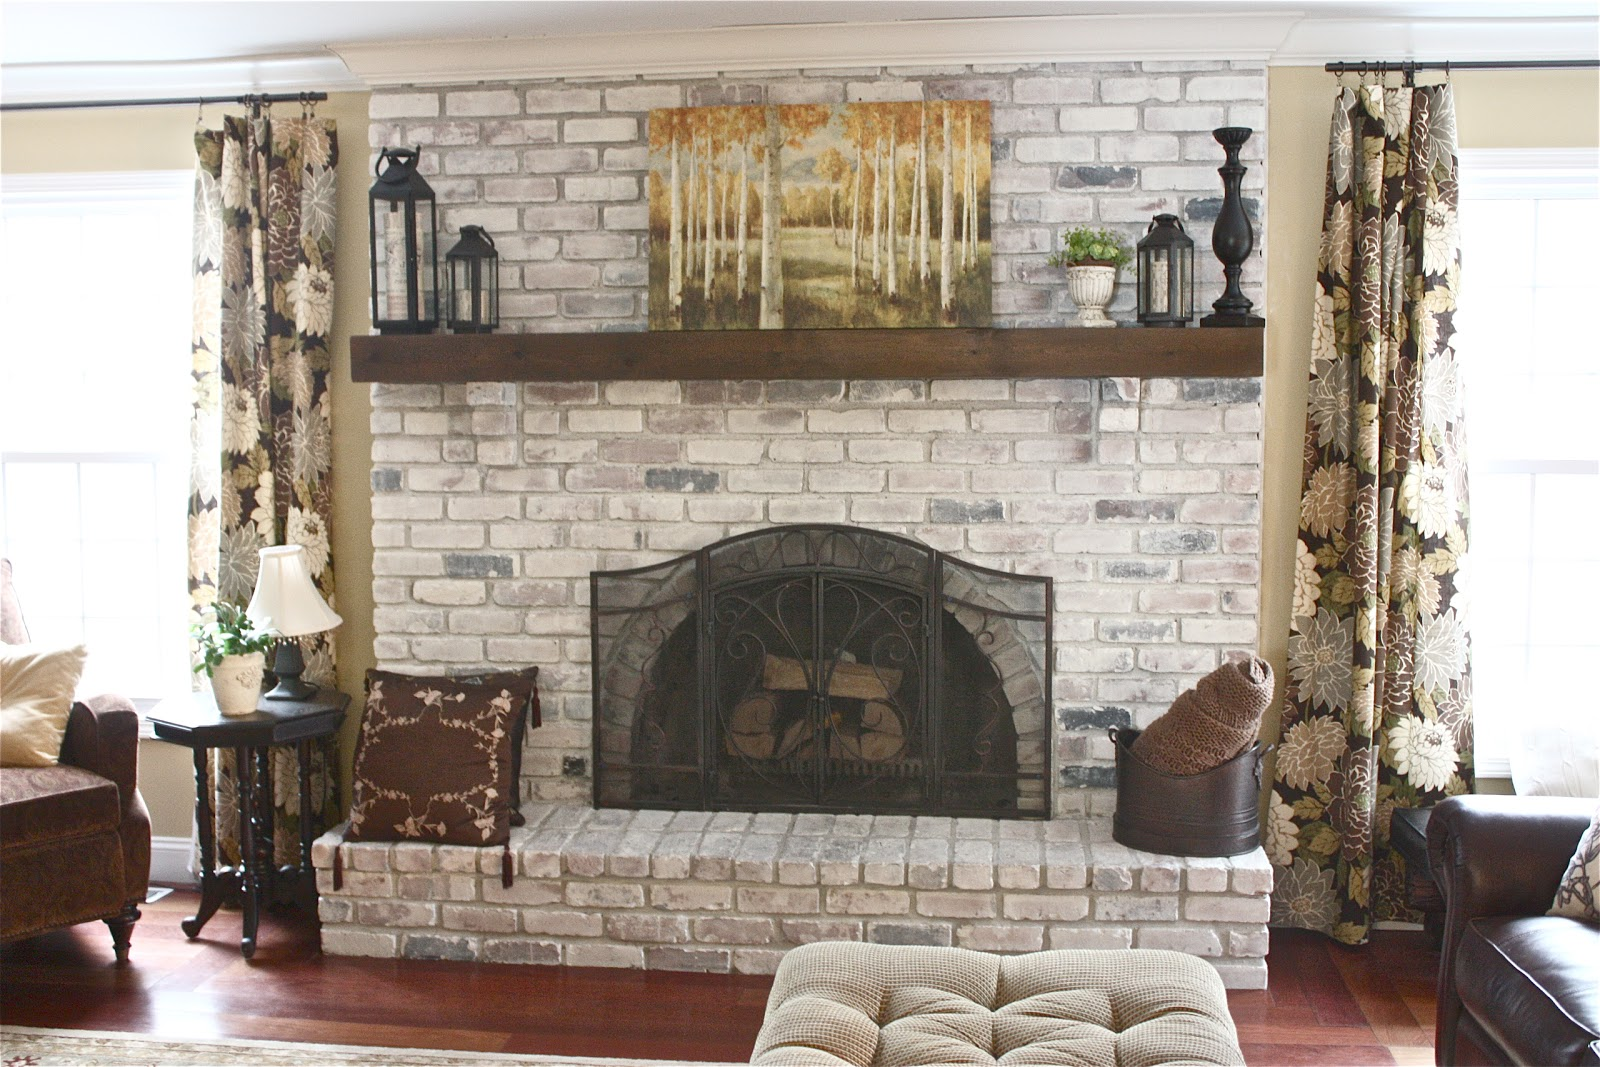 Lime Wash Brick Fireplace The Yellow Cape Cod White Washed Brick Fireplace Tutorial